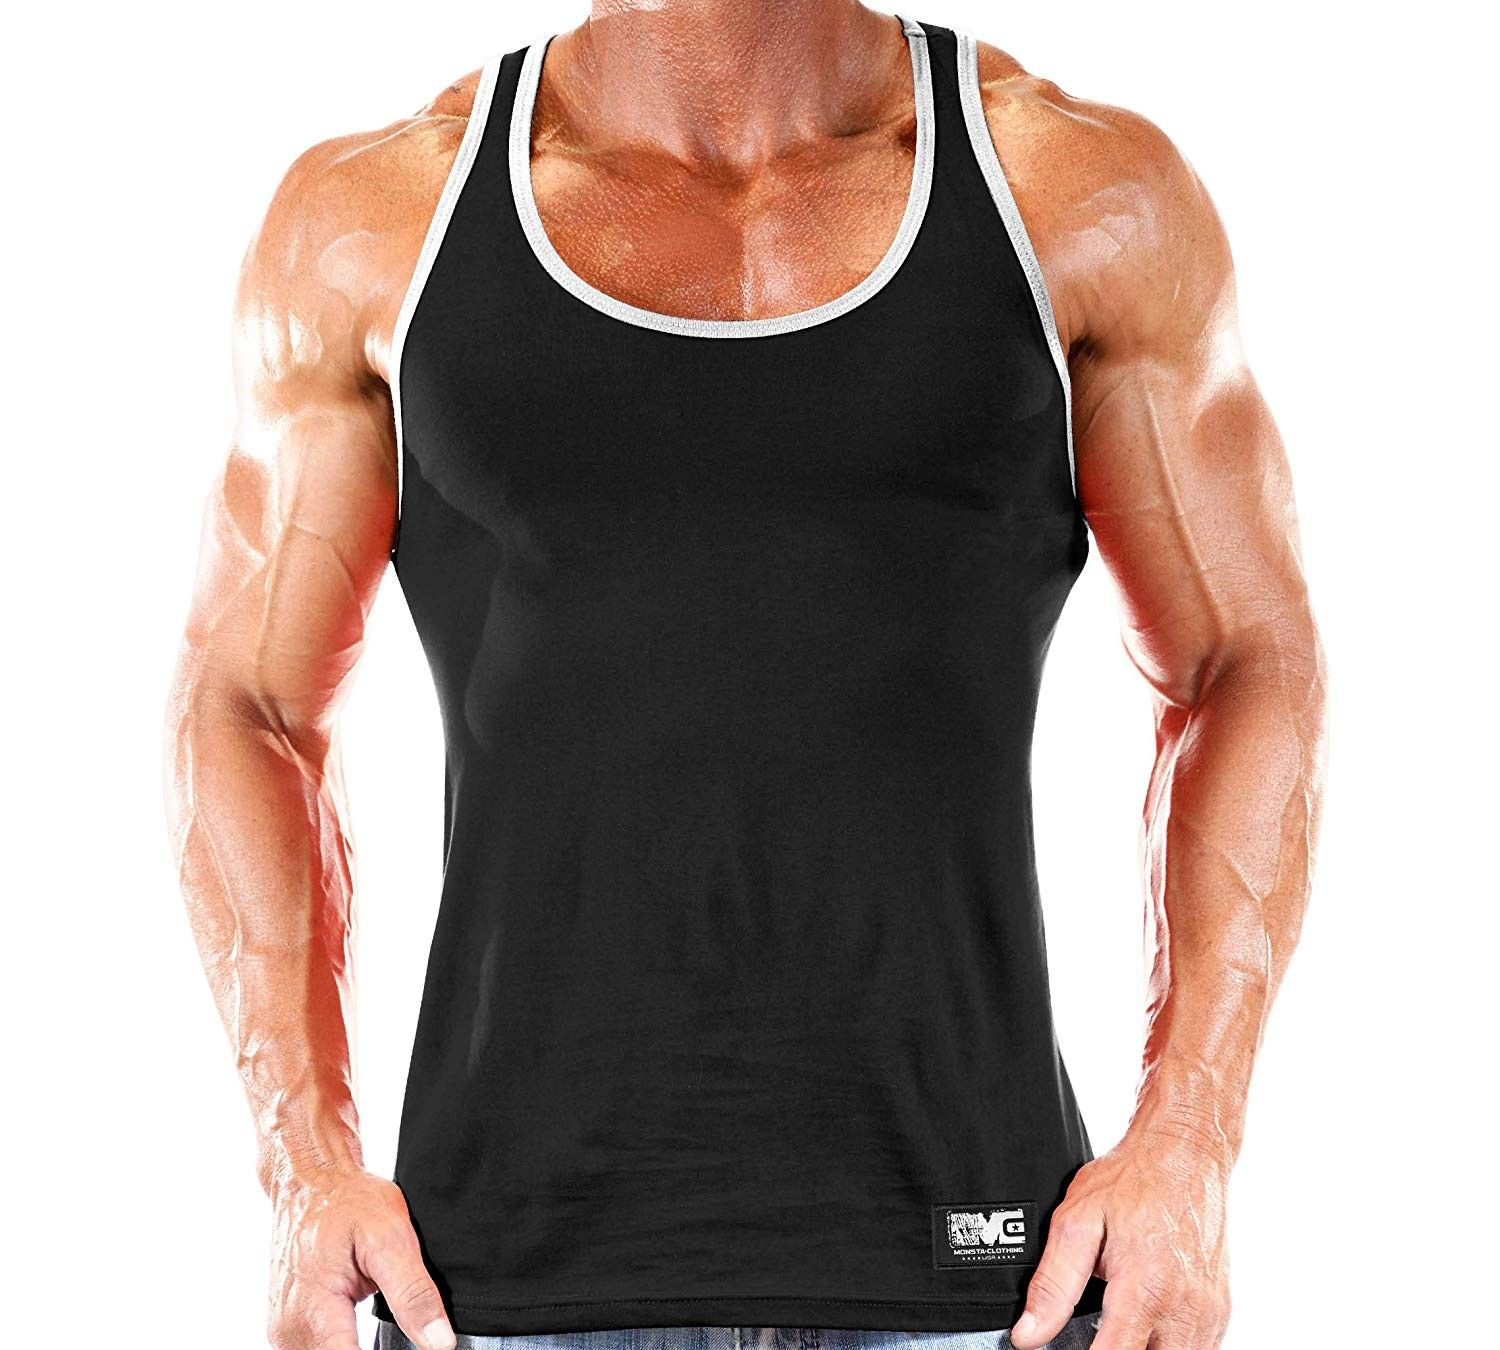 Workout Clothes Tank Top - Black/White - CZ18KG26G5Q - Sports & Fitness Clothing, Men, Shirts, Tank...